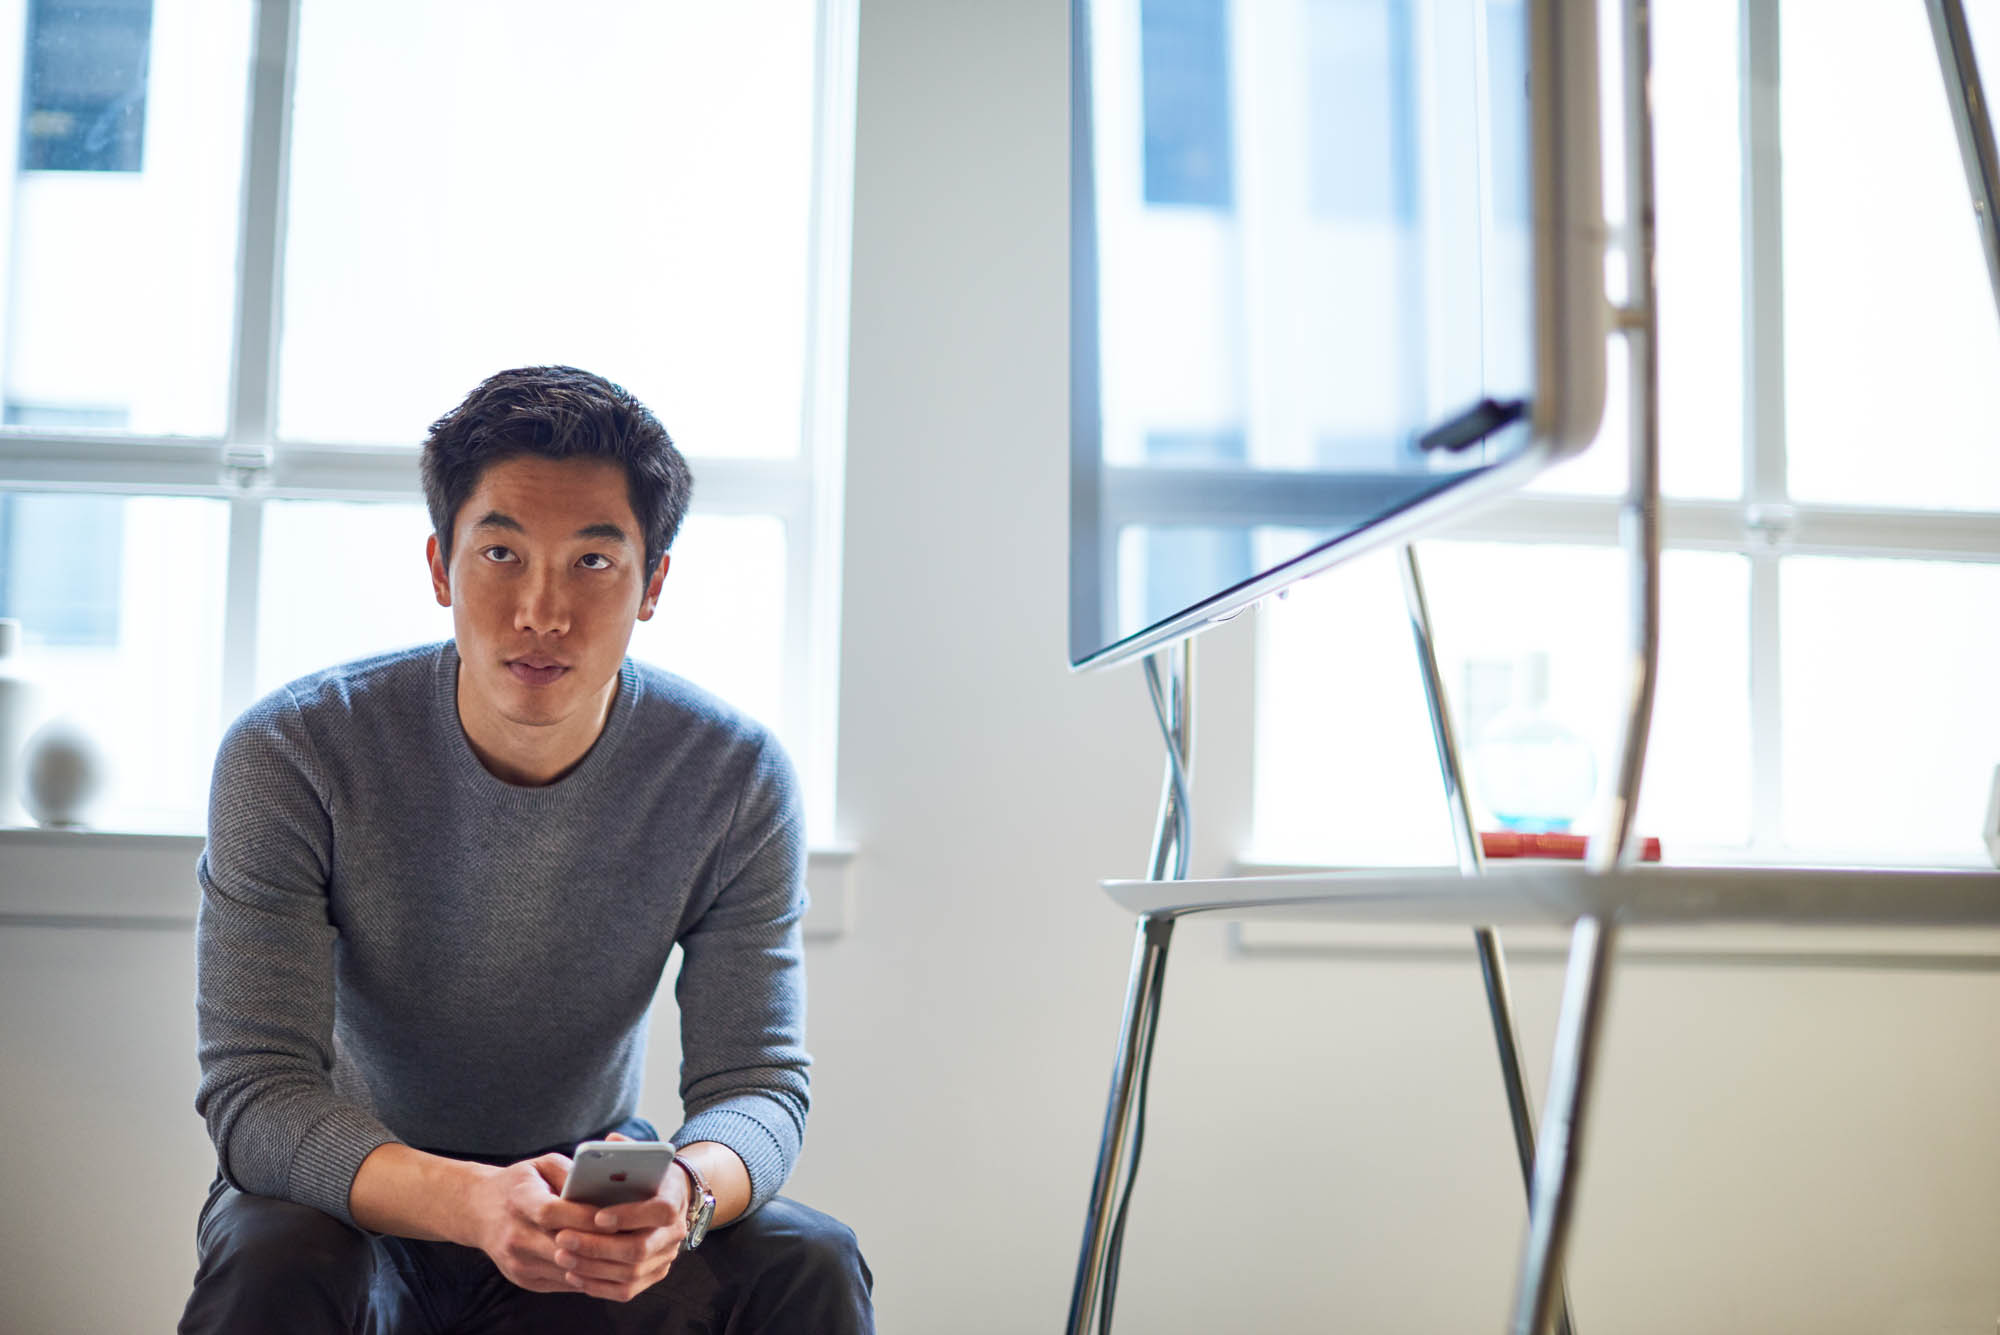 Young Asian man sitting in a modern office